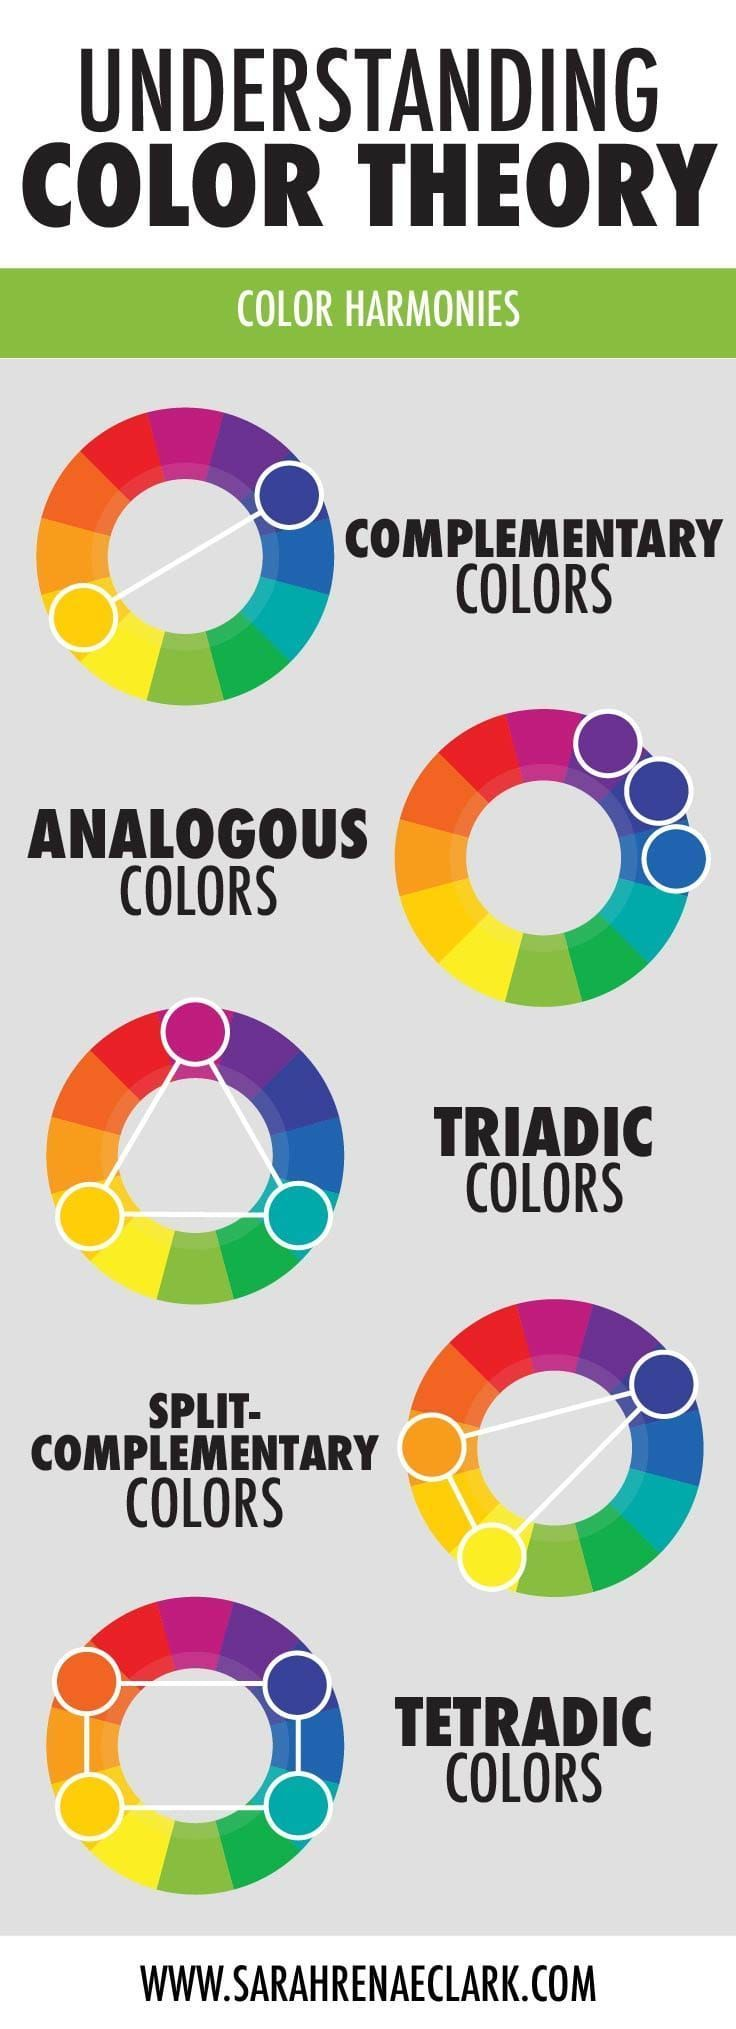 Understanding Color Theory The Basics in 2020 Color